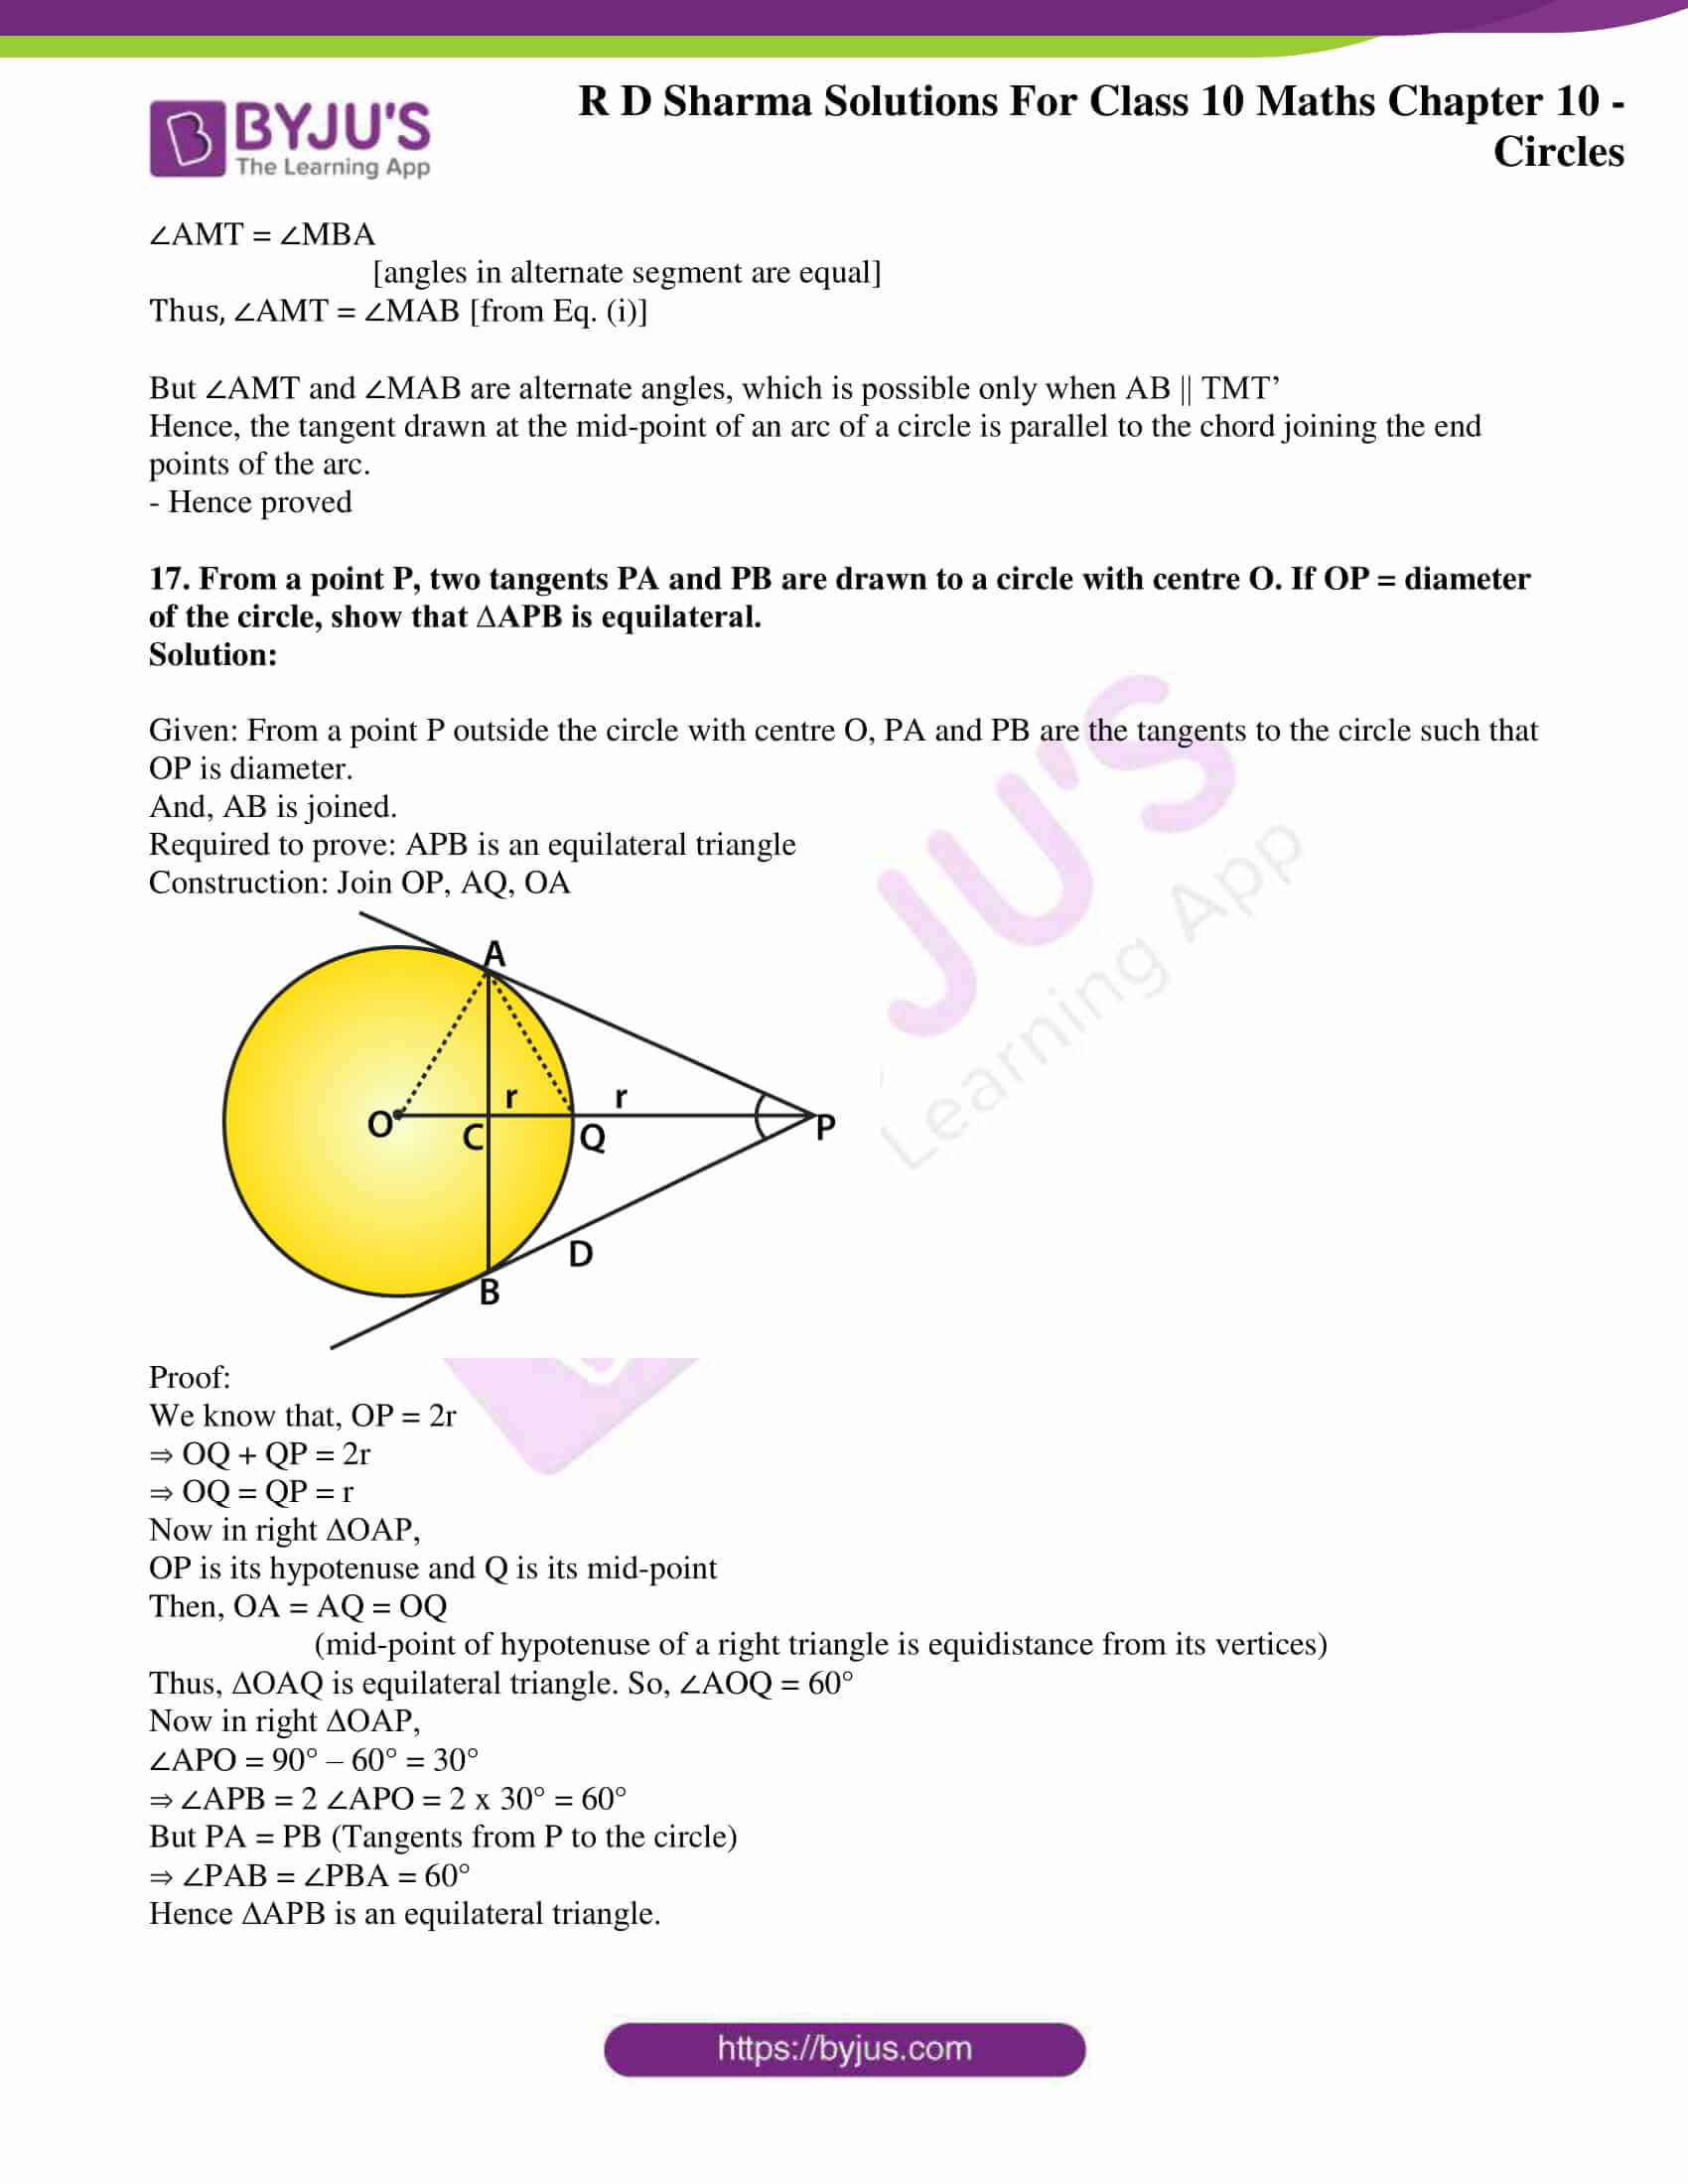 rd sharma class 10 chapter 10 circles solutions exercise 2 12